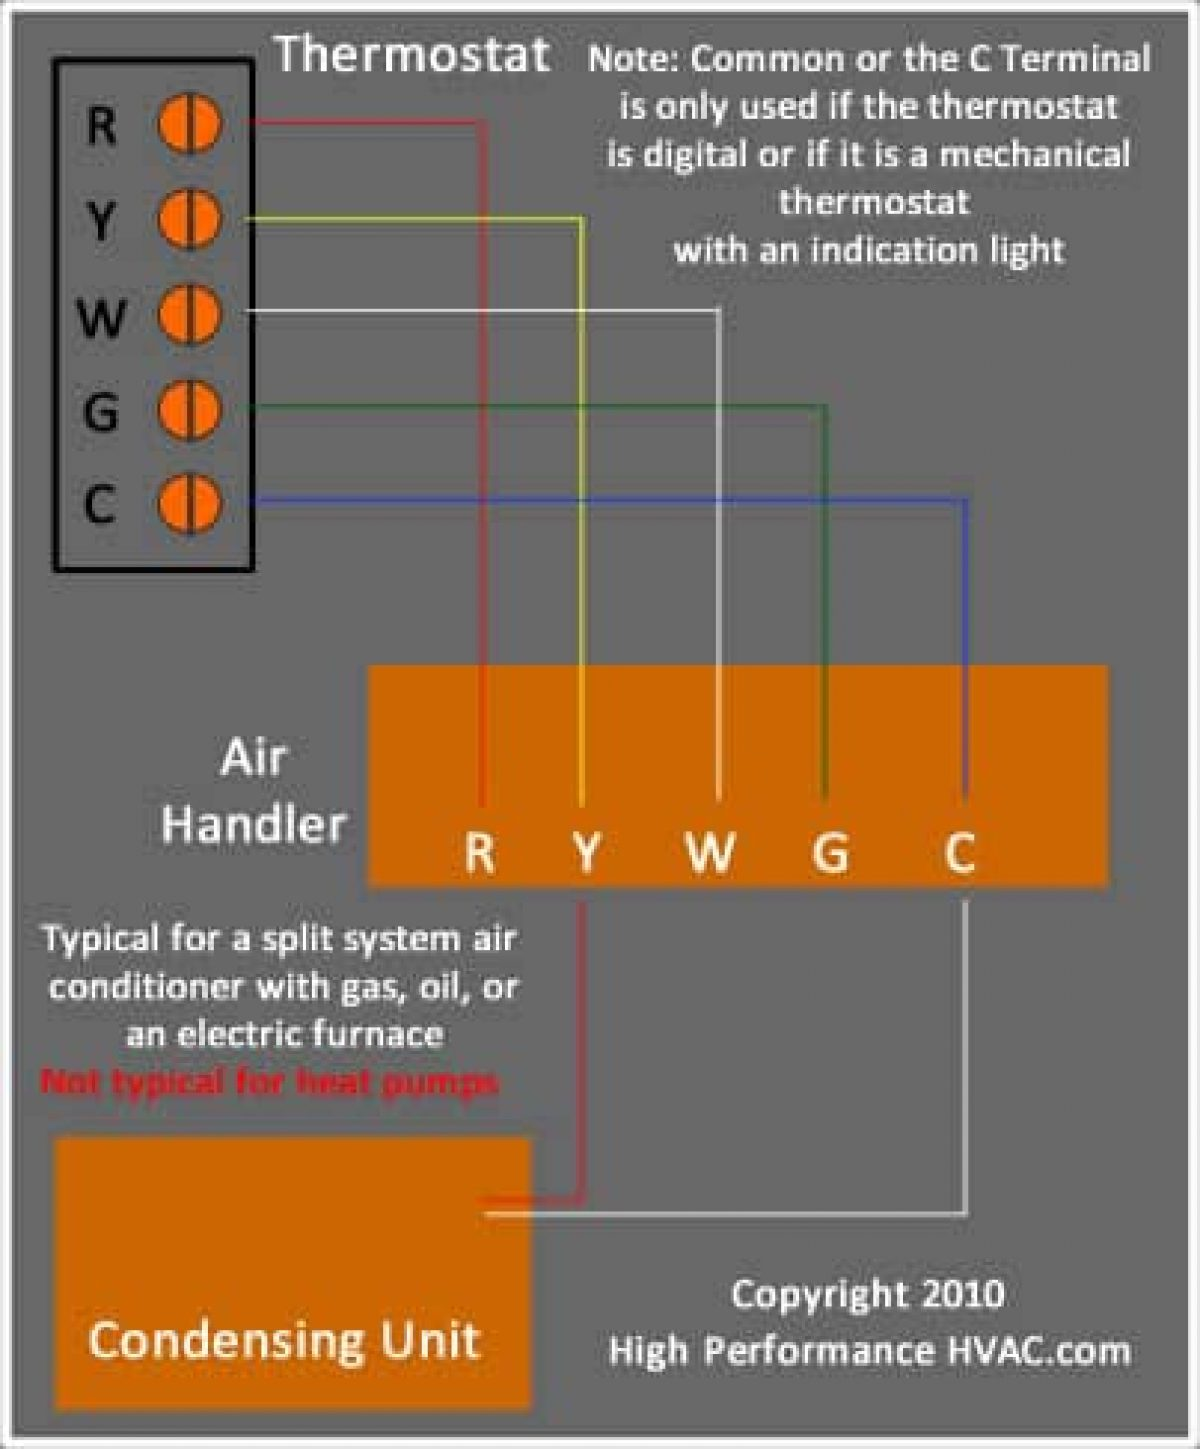 ac thermostat wire diagram thermostat wiring diagrams  wire installation  simple guide  thermostat wiring diagrams  wire